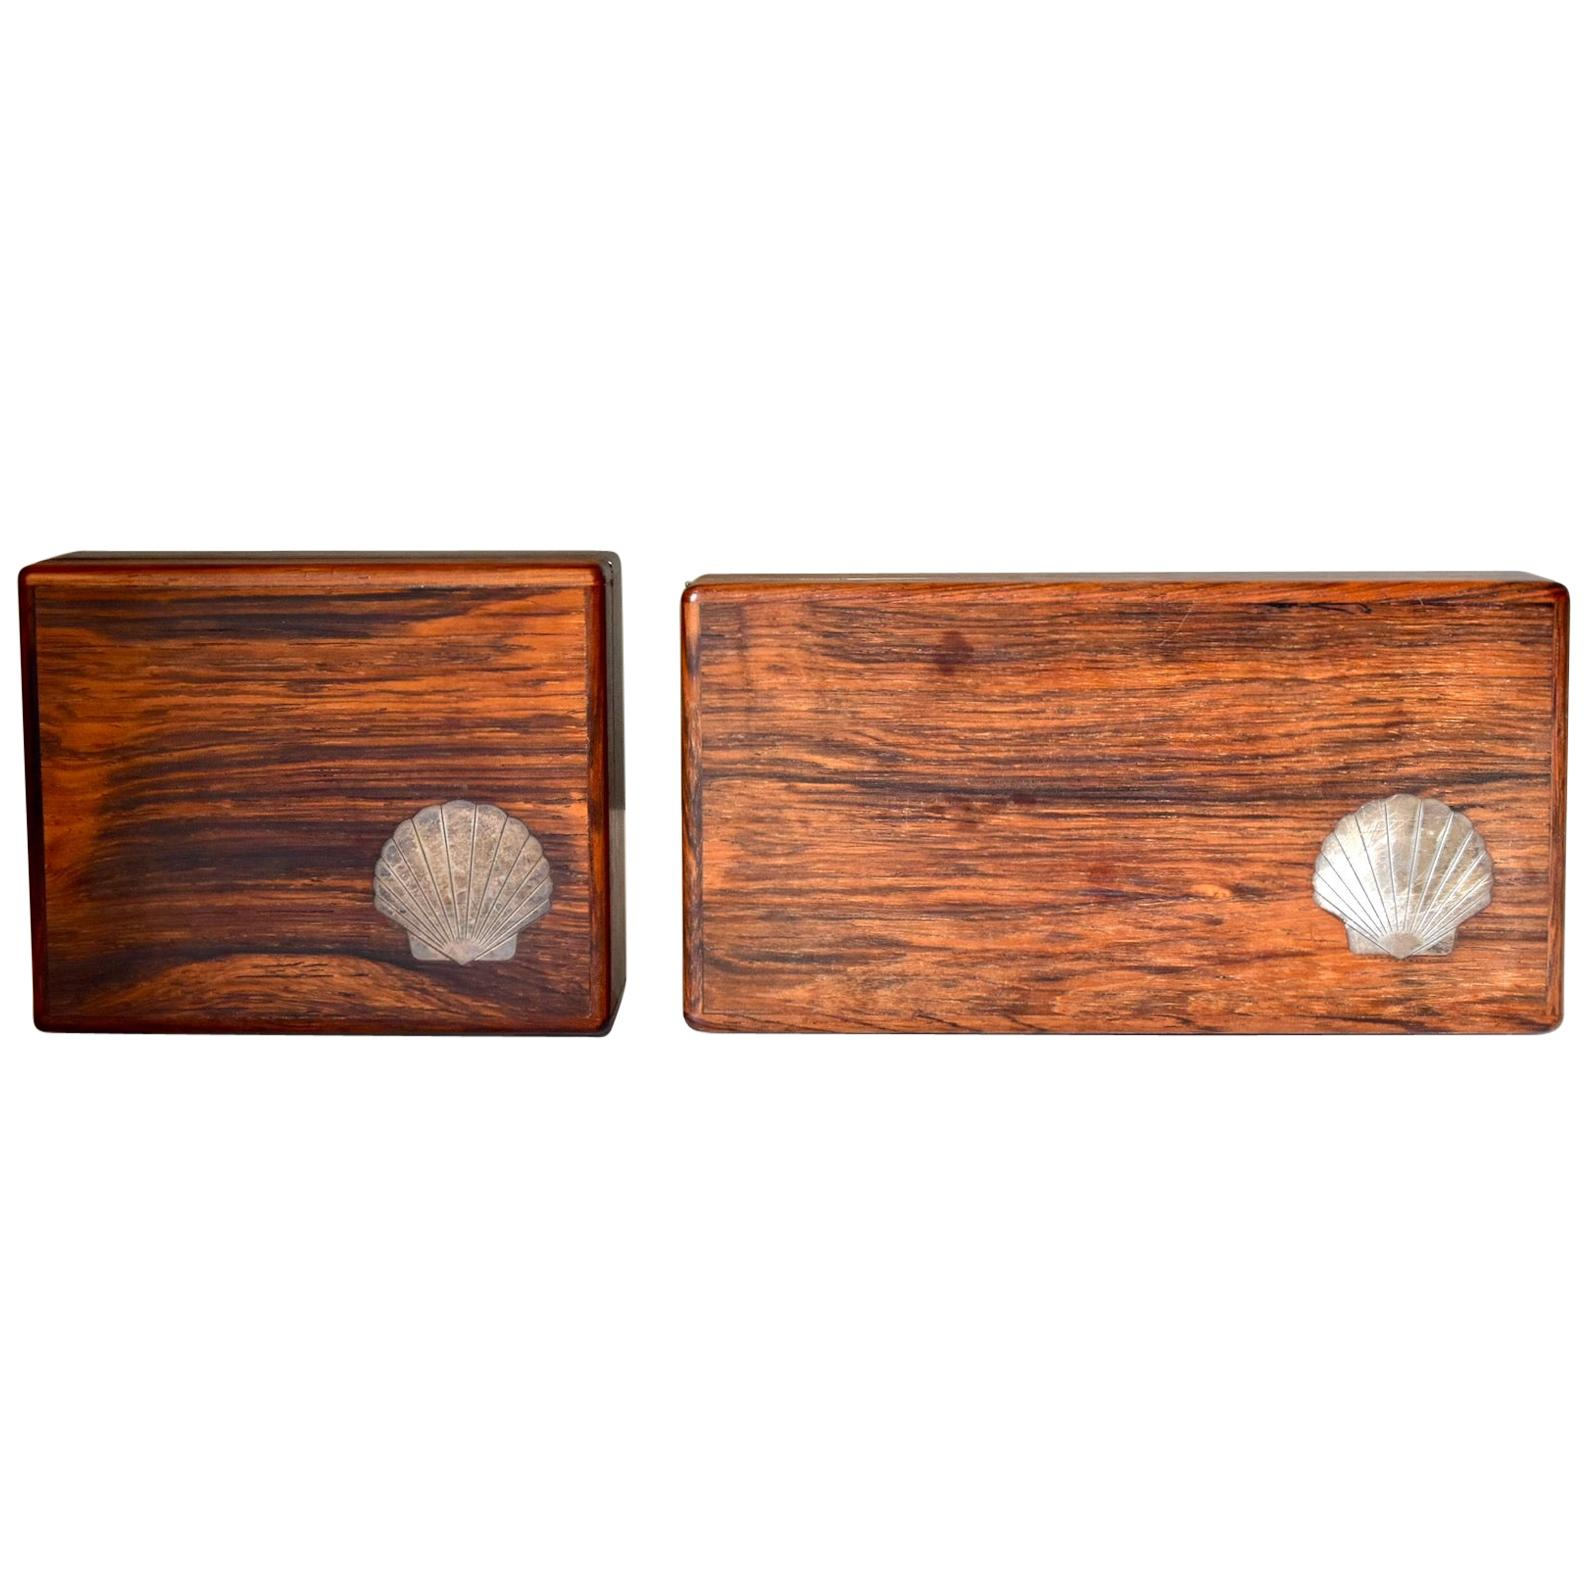 Set of Two Vintage Danish Modern Rosewood Boxes with Sterling Inlays, 1960s